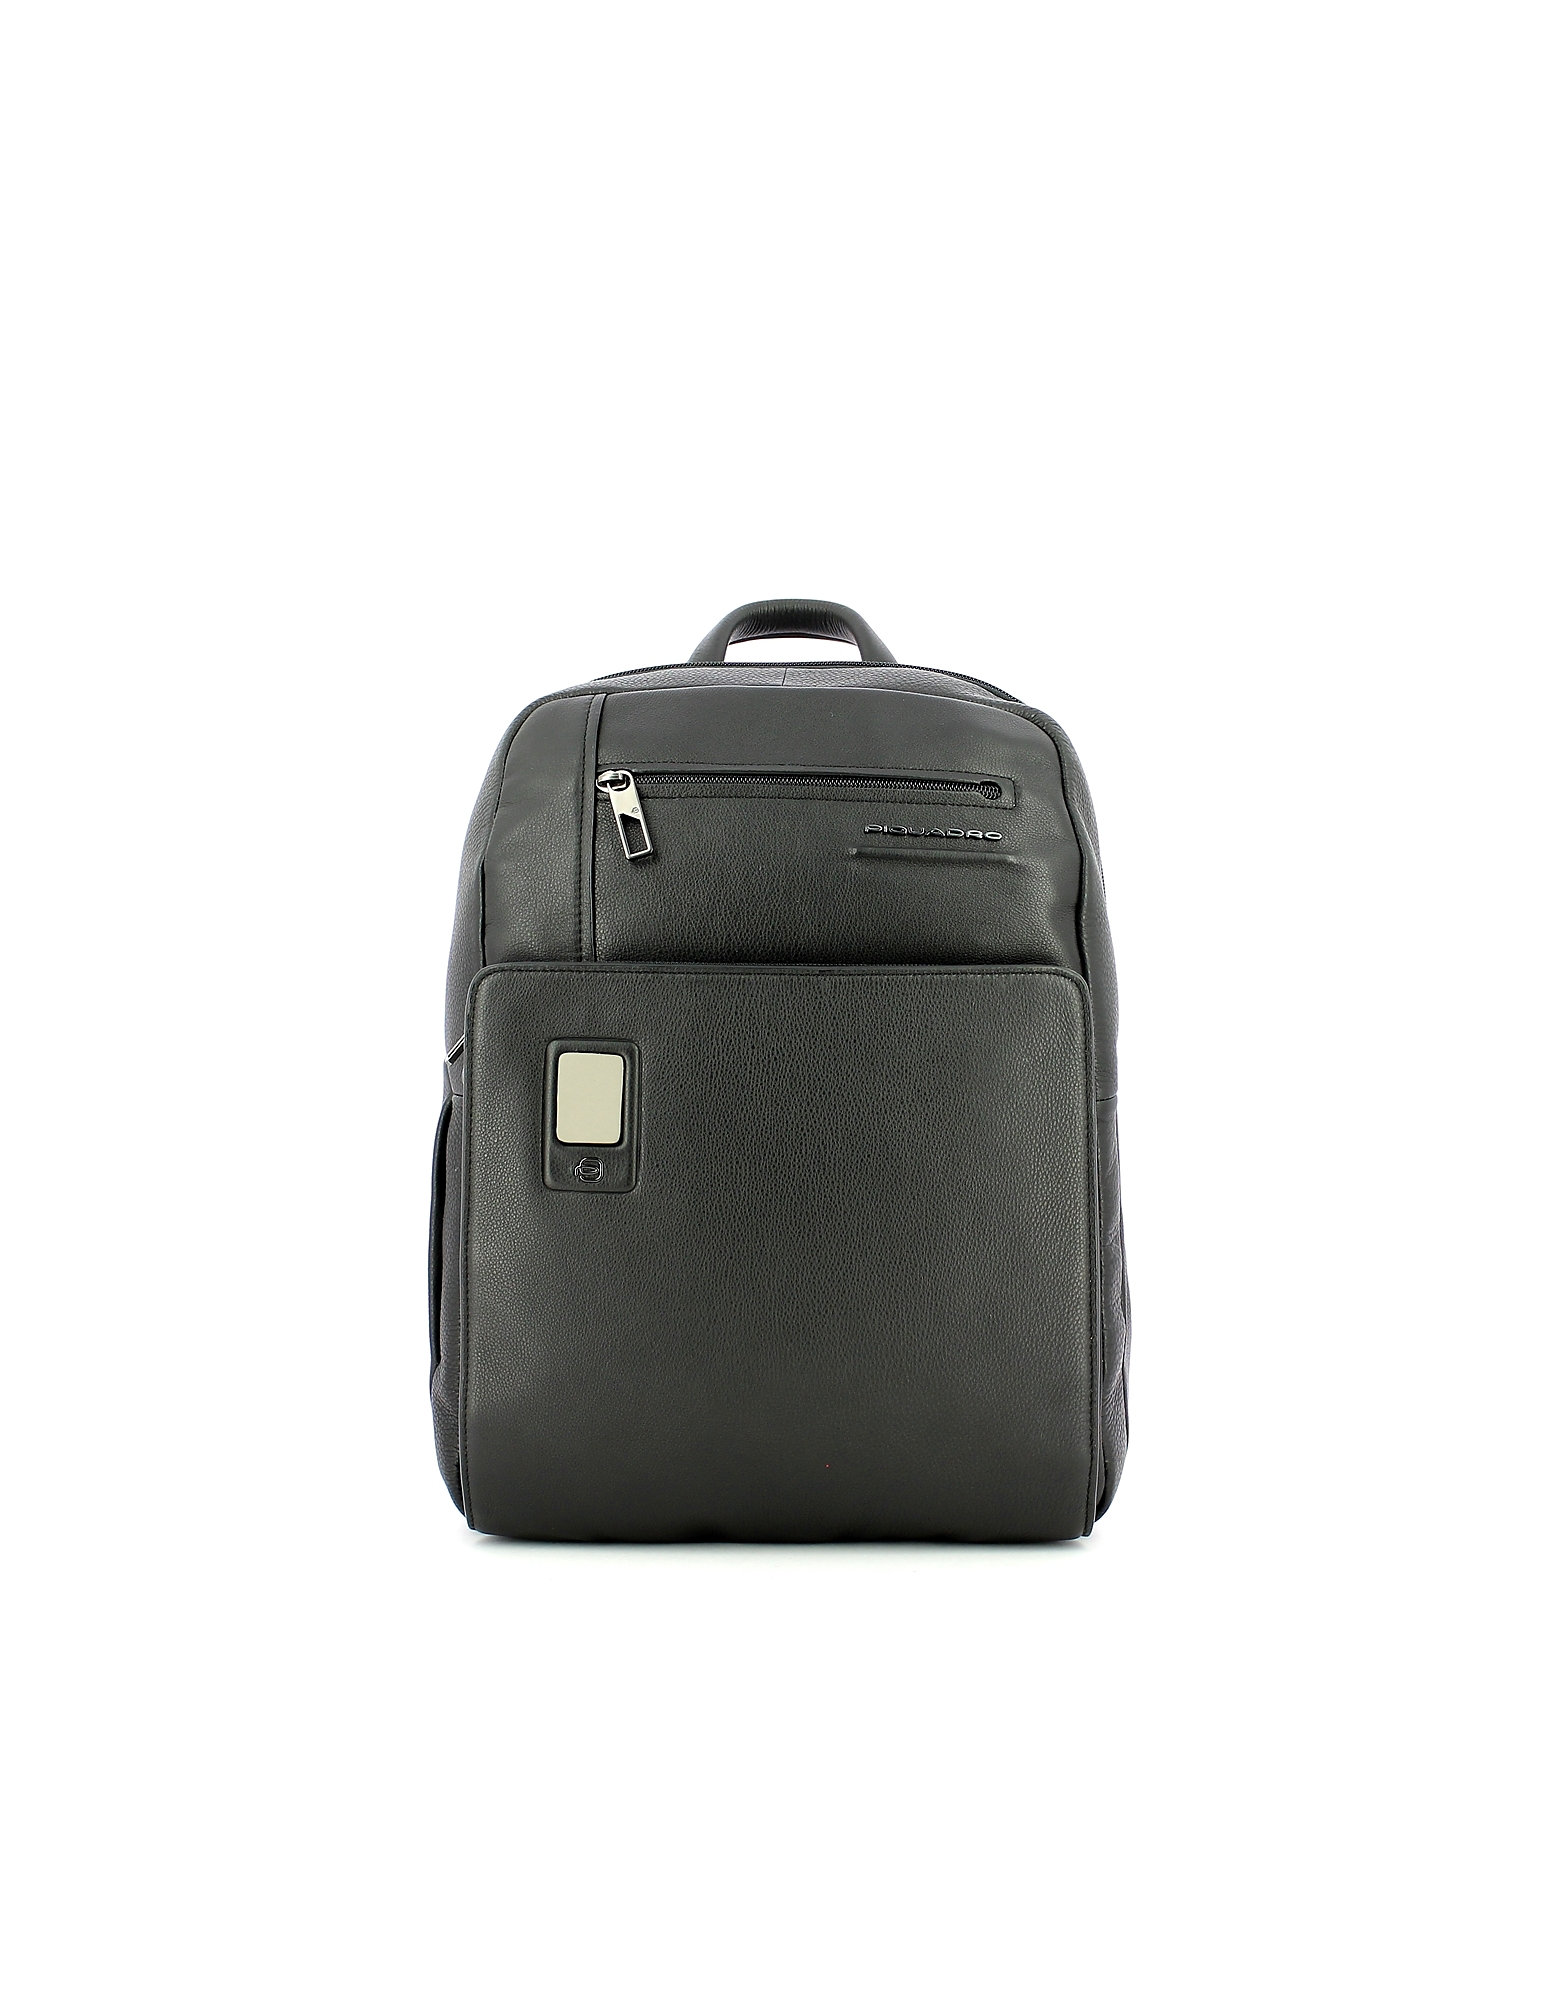 Piquadro Designer Men's Bags, Men's Black Backpack